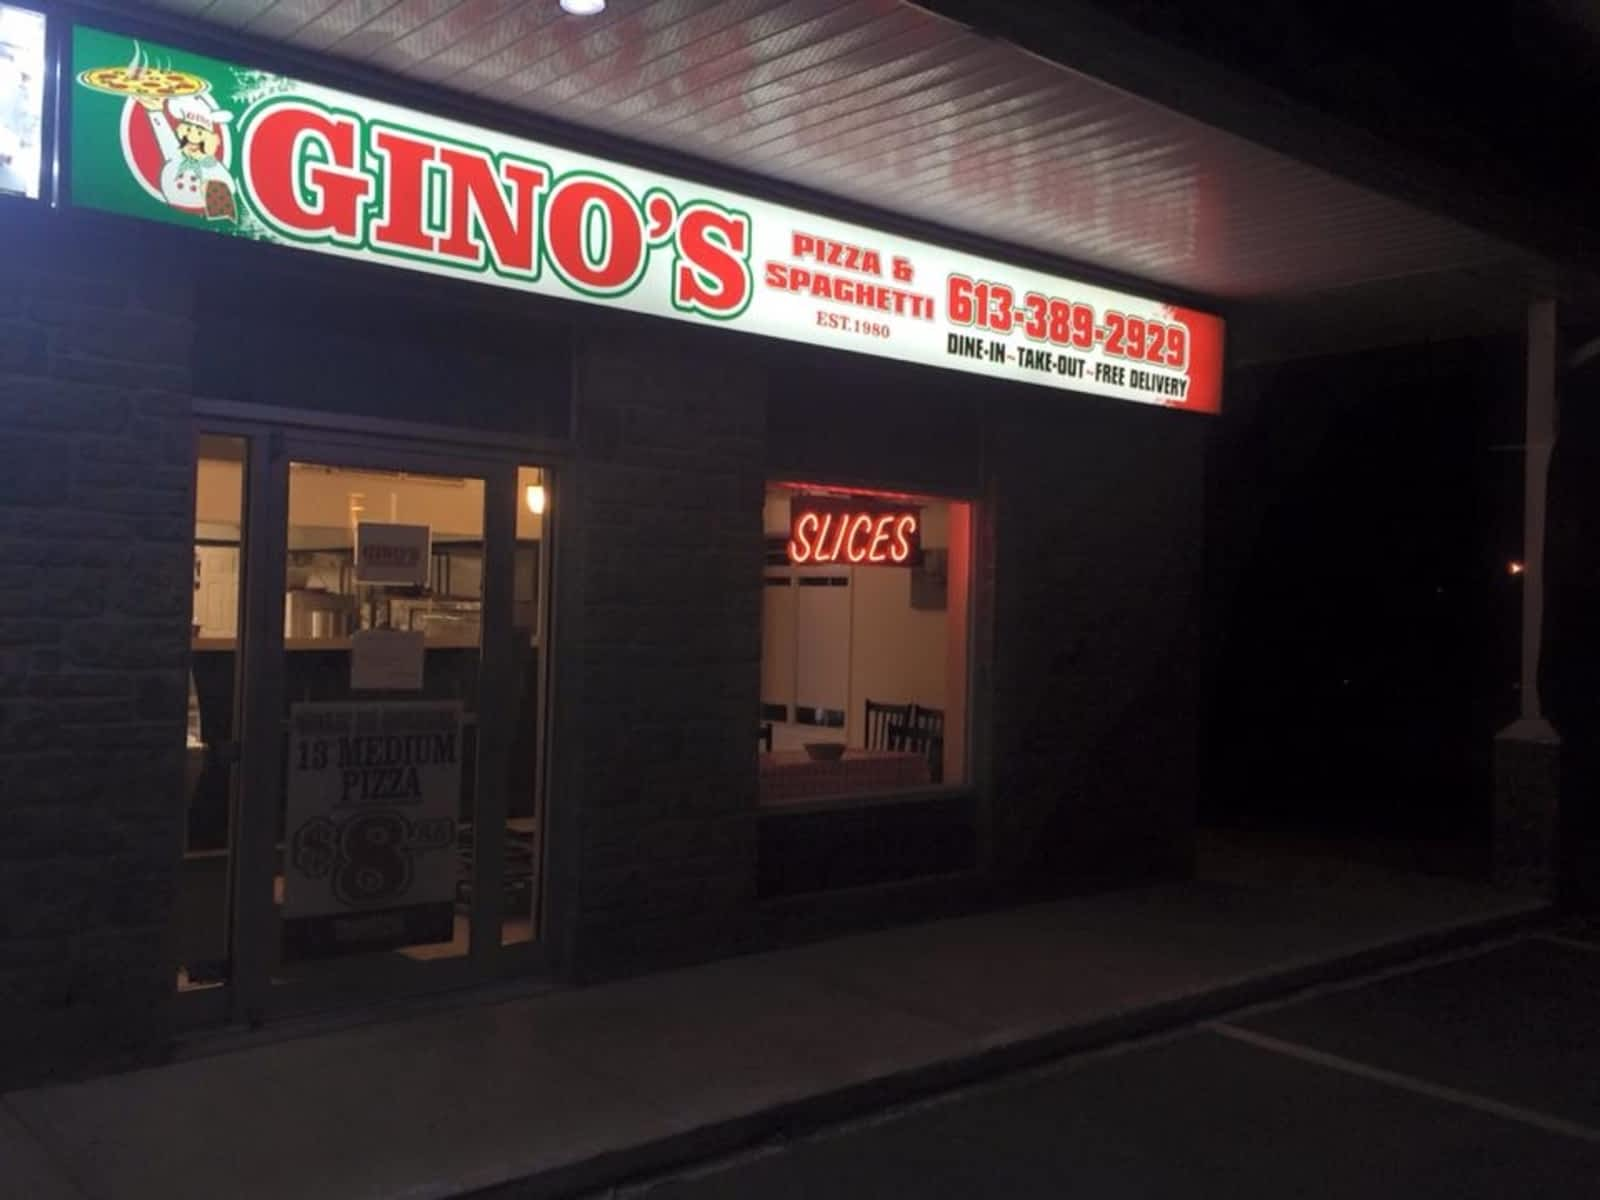 Ginos Pizza Spaghetti Menu Hours Prices 6 Speers Blvd A